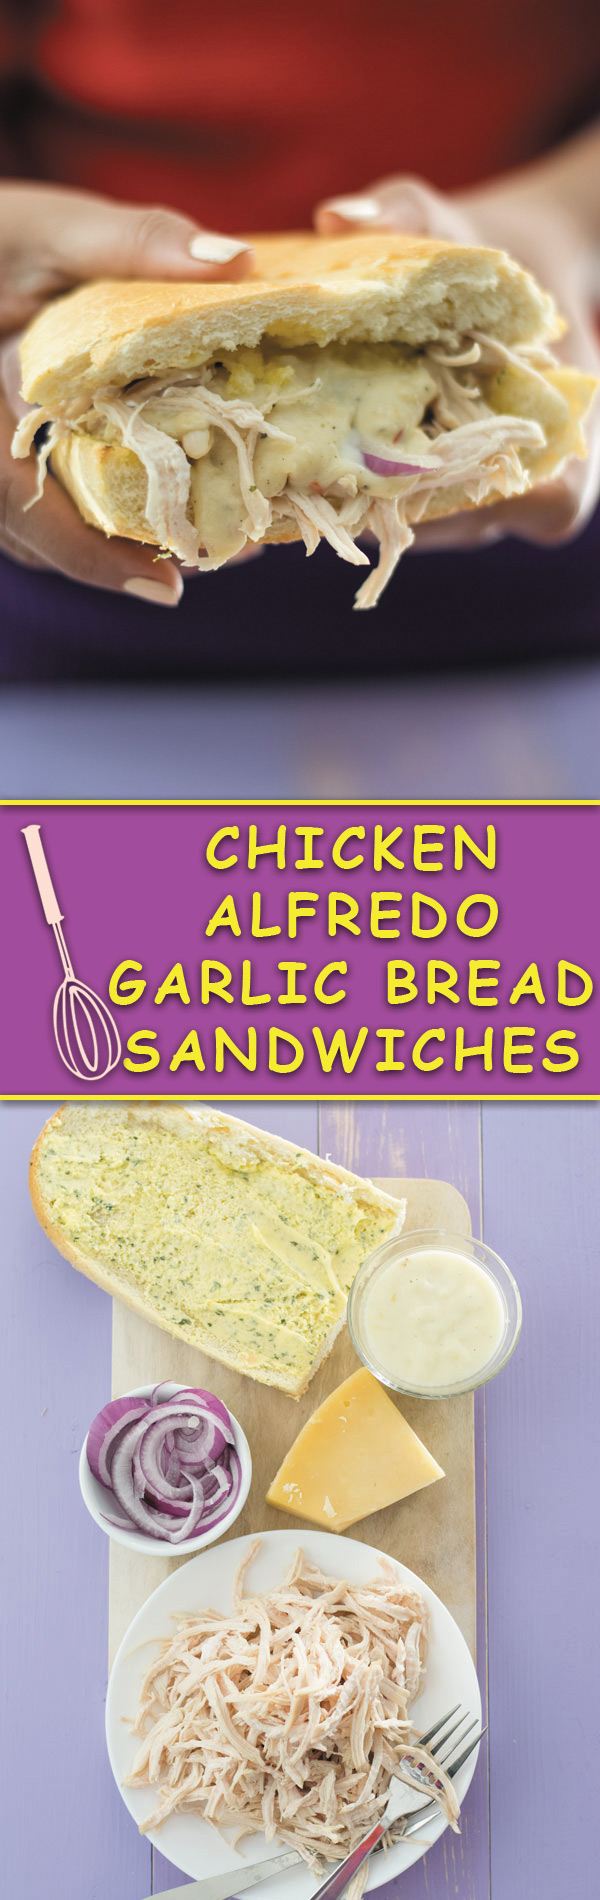 Chicken Alfredo Garlic Bread Sandwiches - super easy weeknight meal BUT with tons of flavor! Shredded chicken, alfredo sauce, parmesan cheese and garlic bread makes for a mean addicting sandwich!